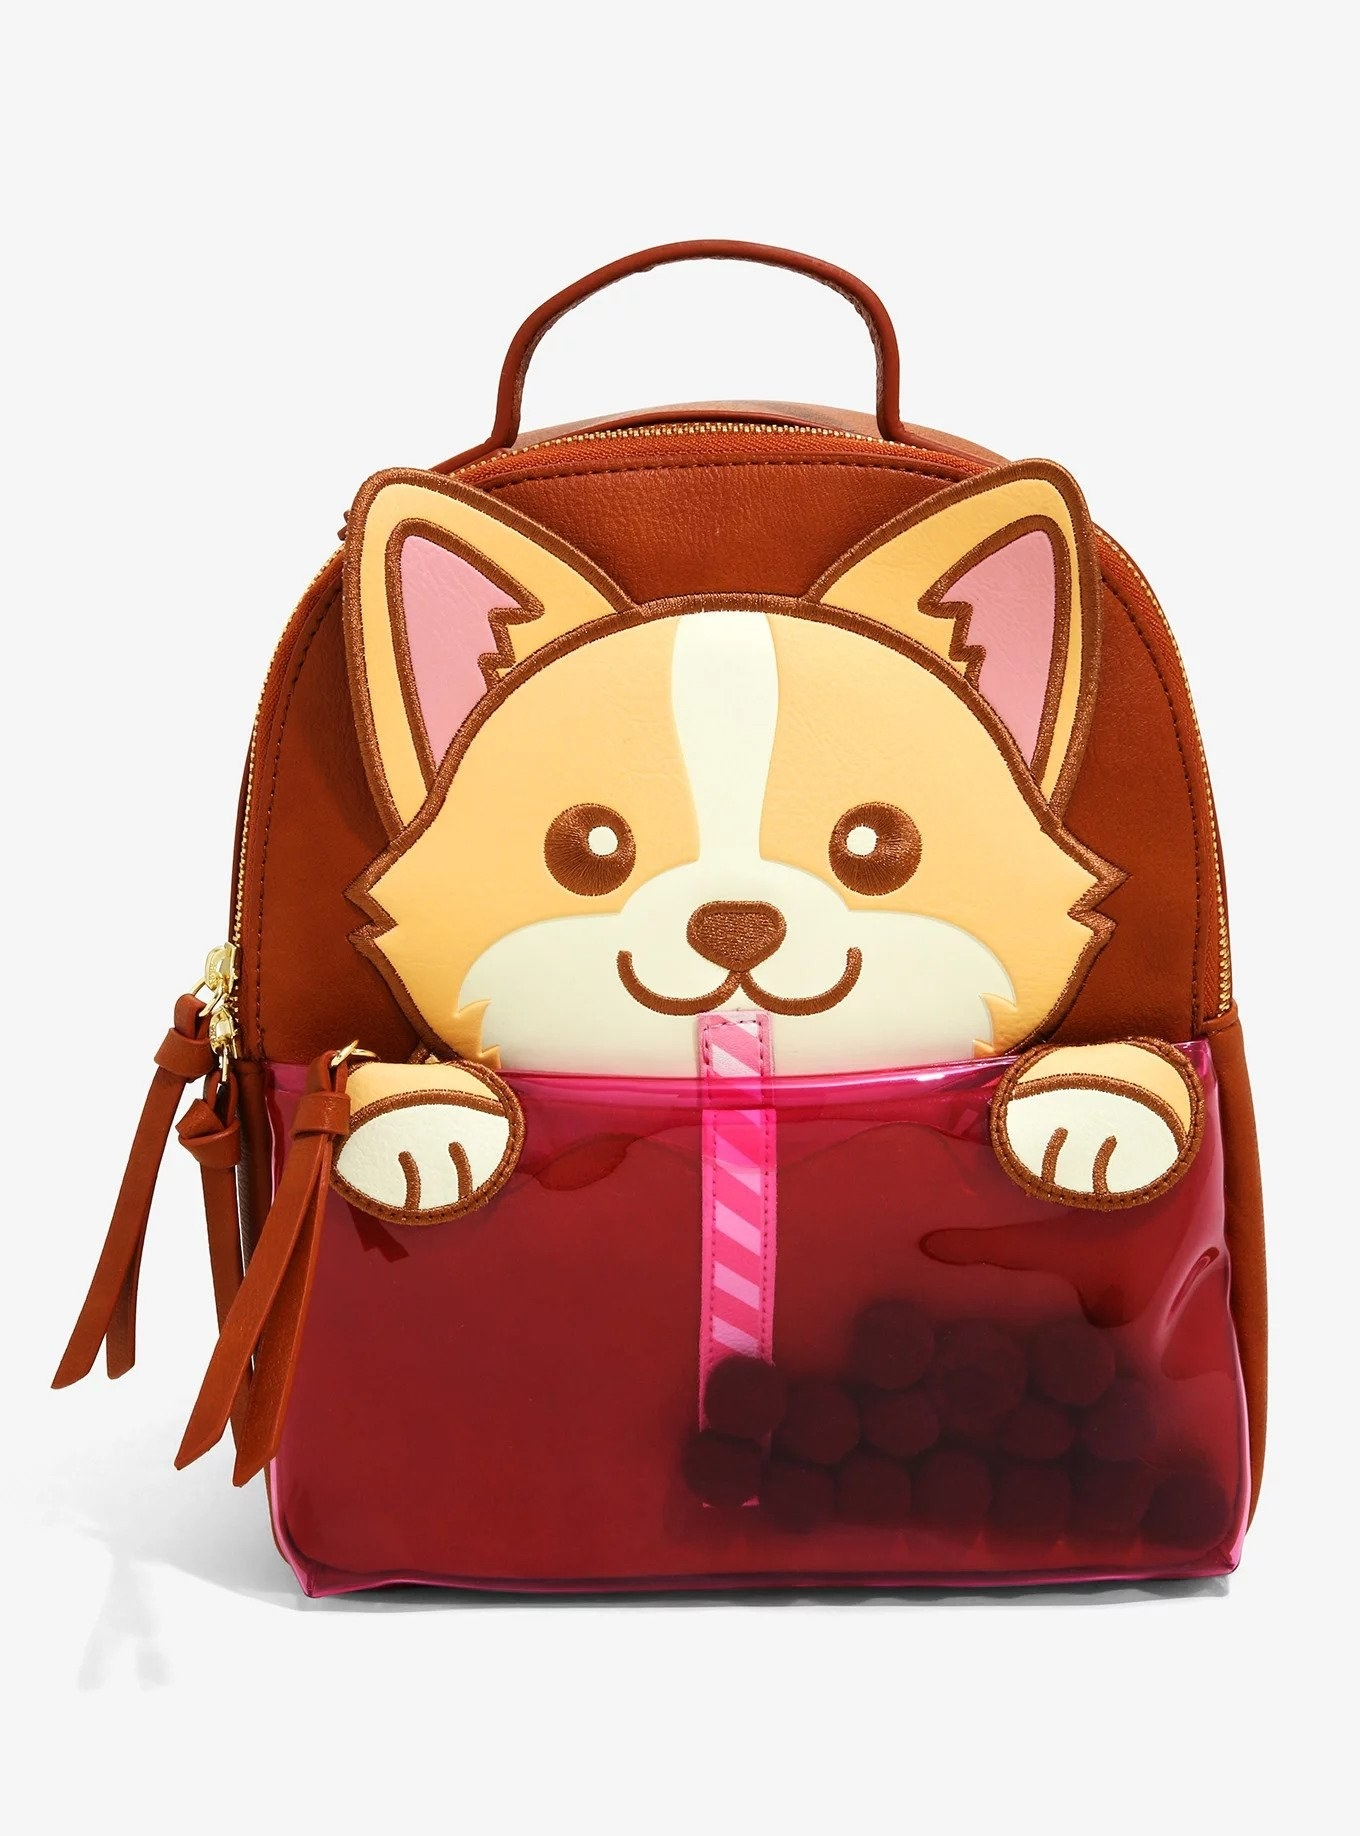 backpack with corgi head and straw on top and two paws on top of the front pouch, which has a see-through pocket filled with plush boba beads